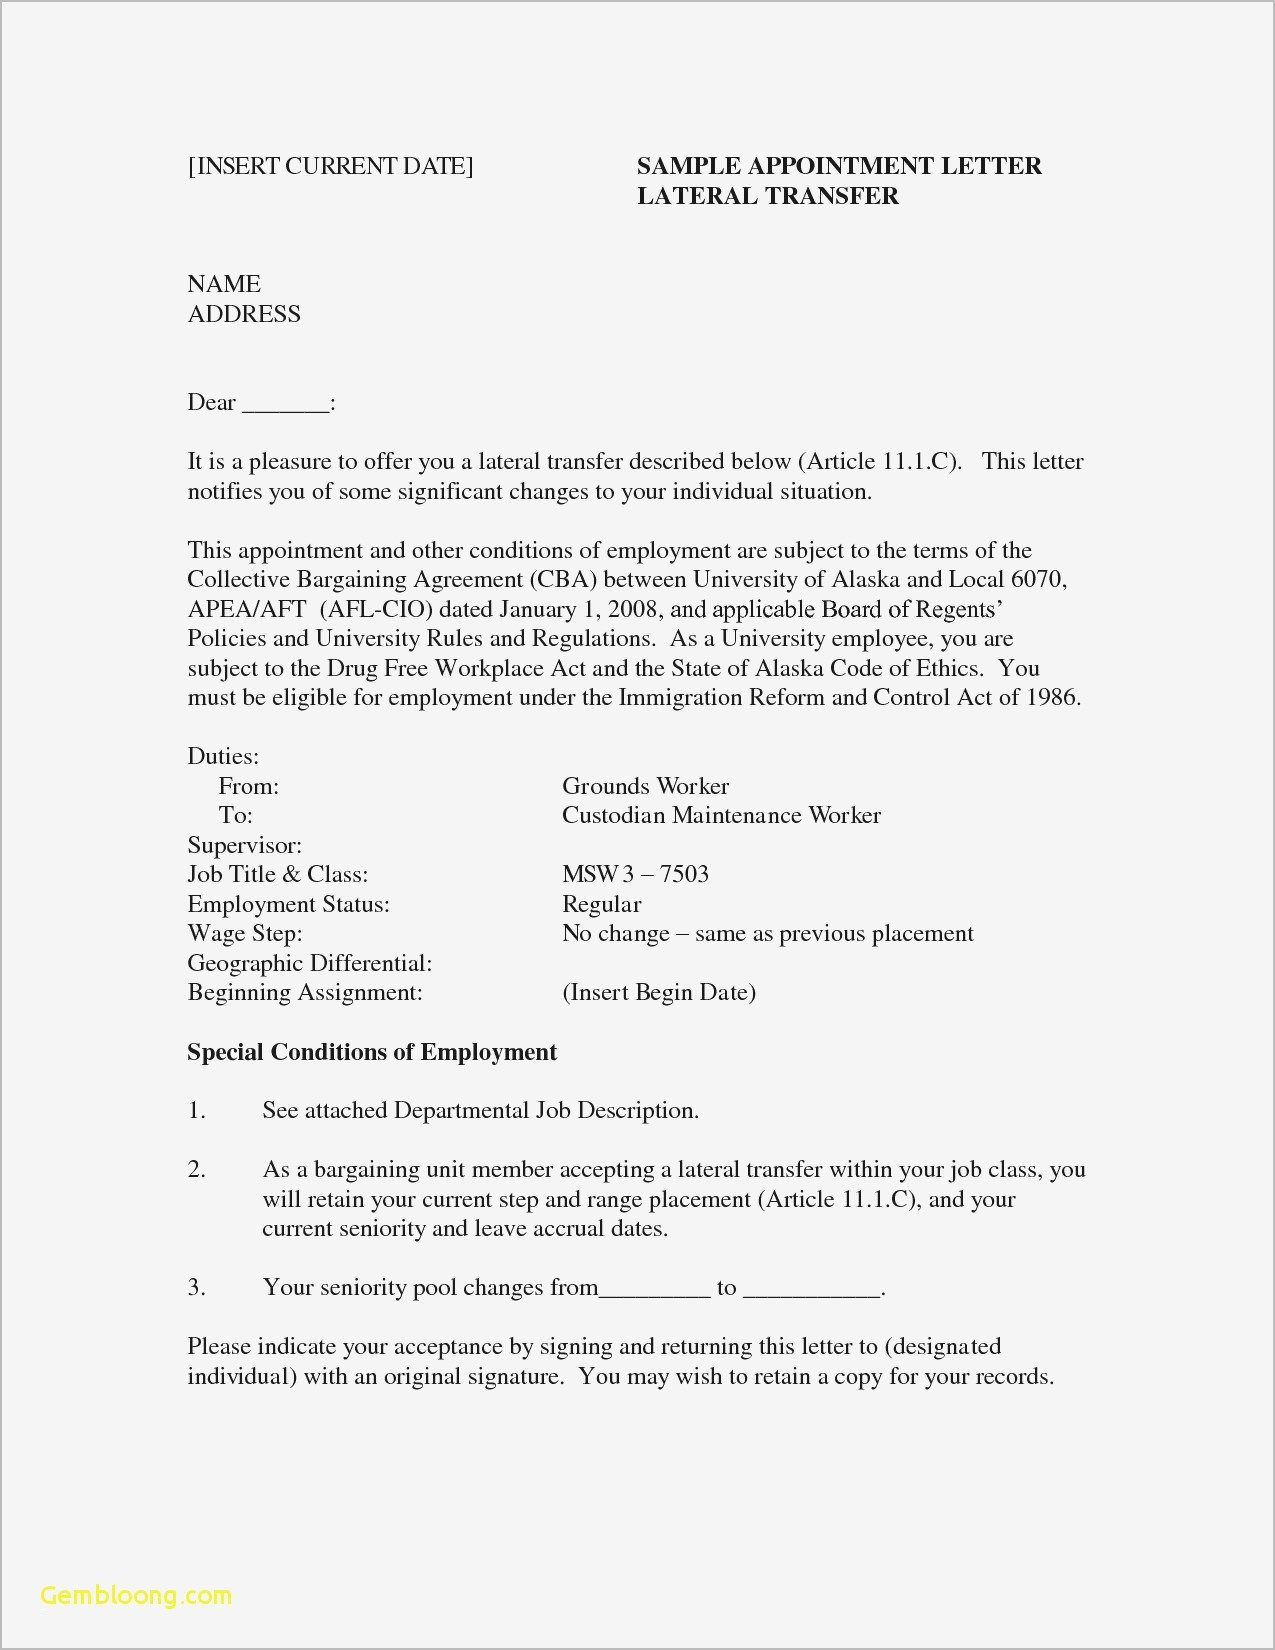 Free Resume Download - Sample Chronological Resume format Free Downloads Best Actor